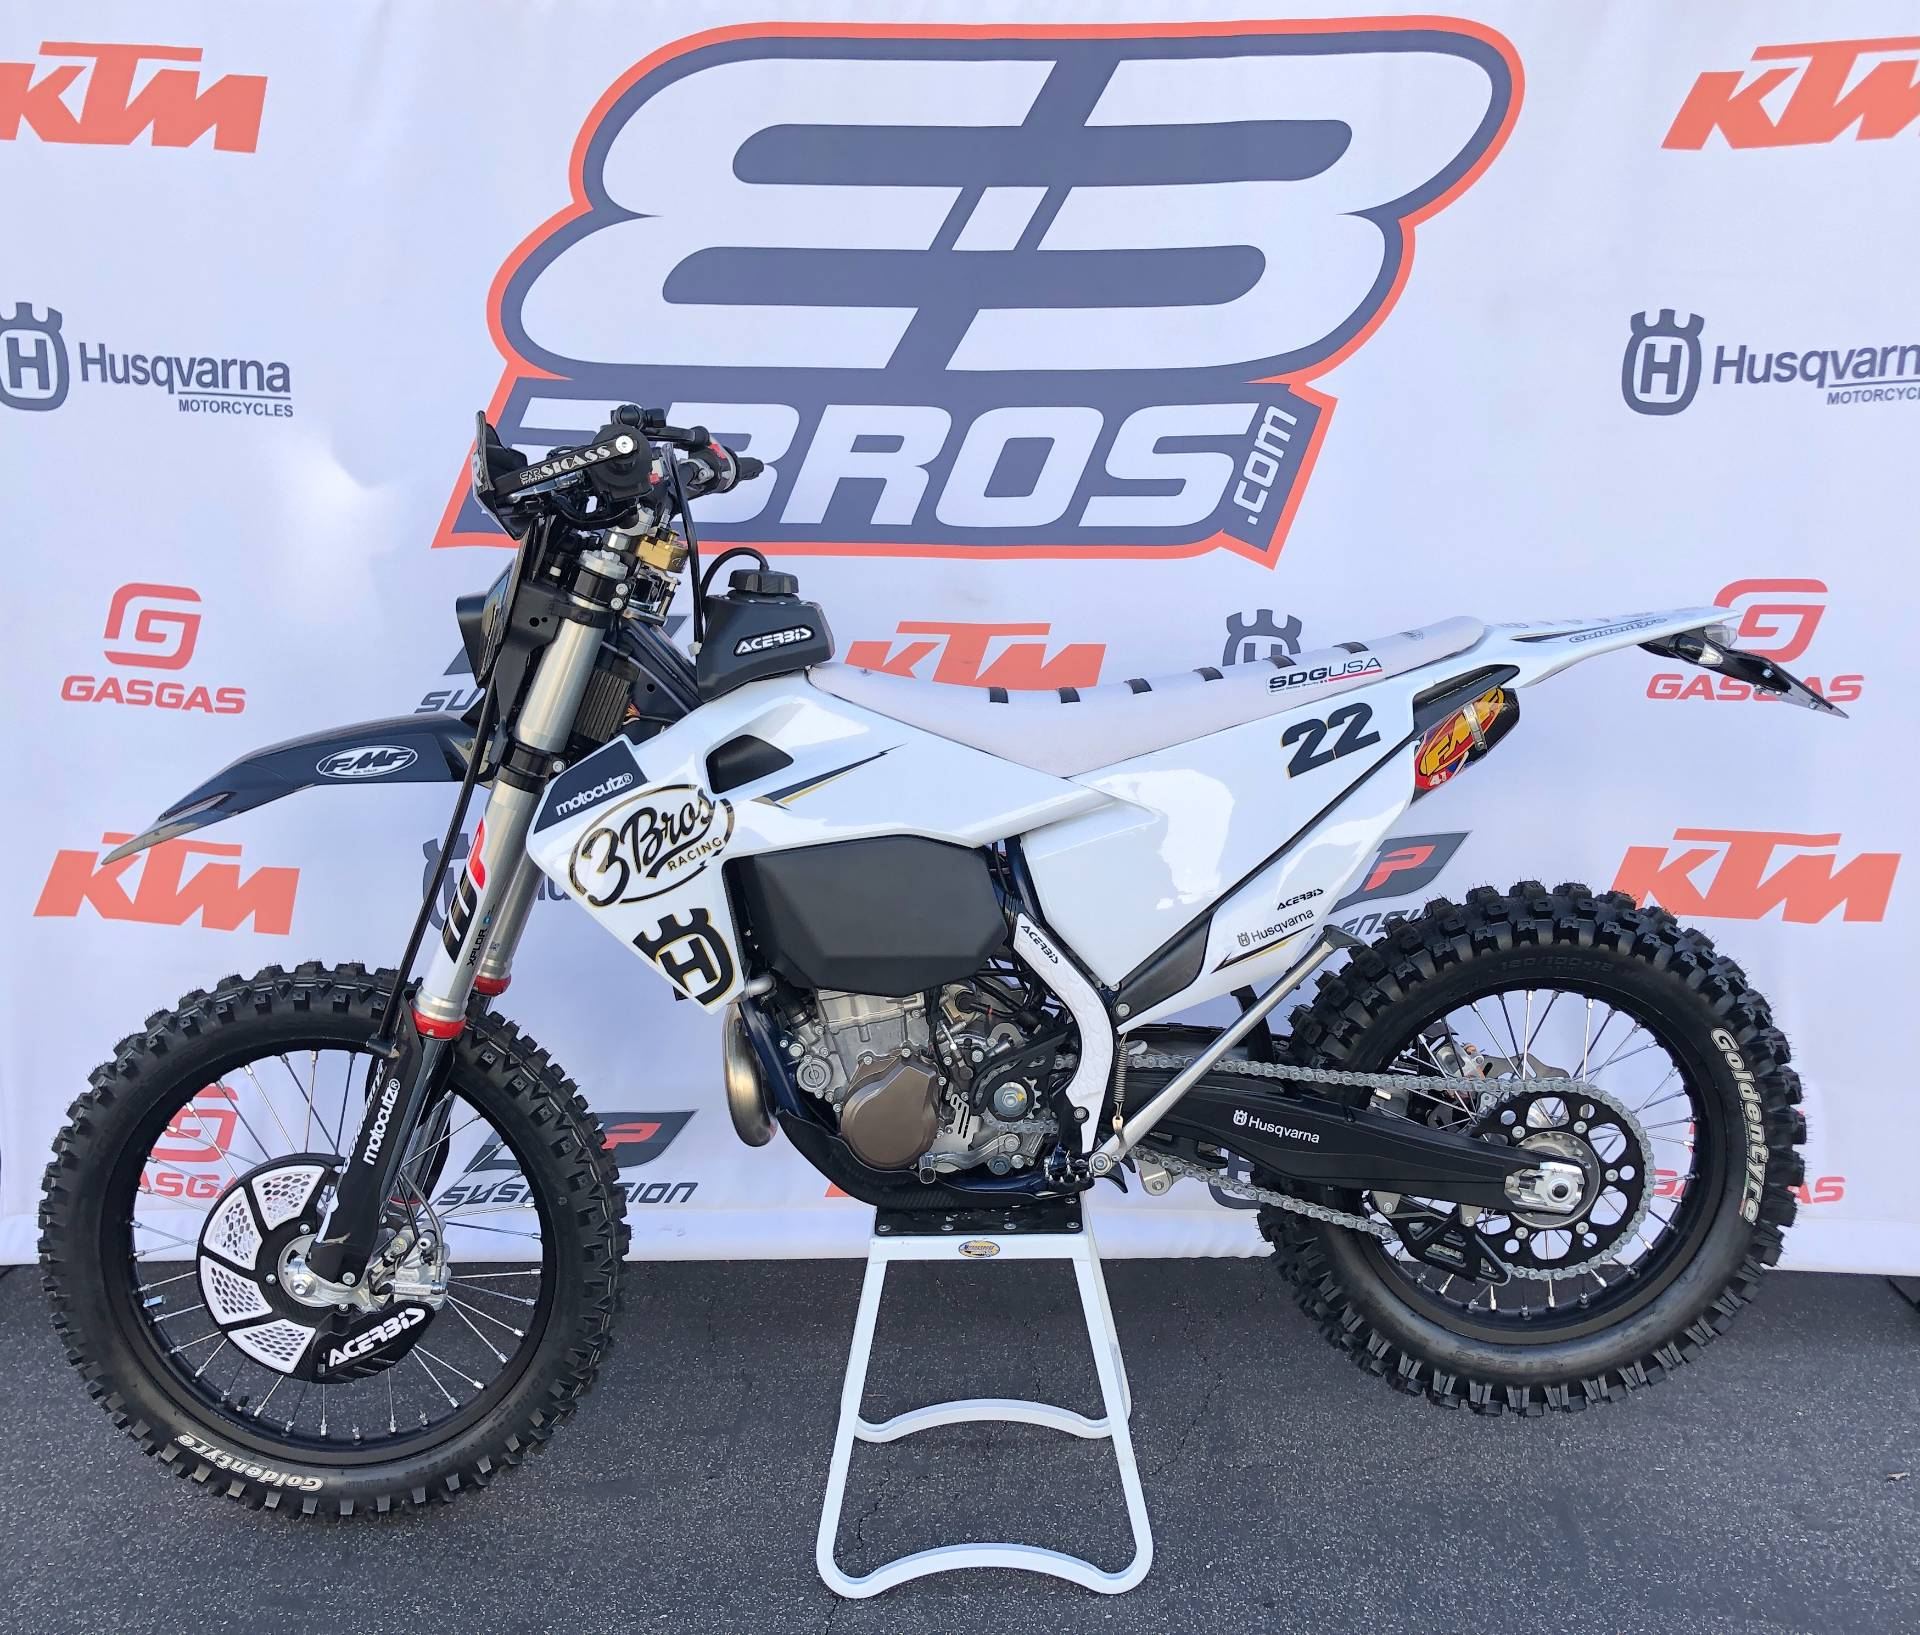 2021 Husqvarna FE 501s in Costa Mesa, California - Photo 3